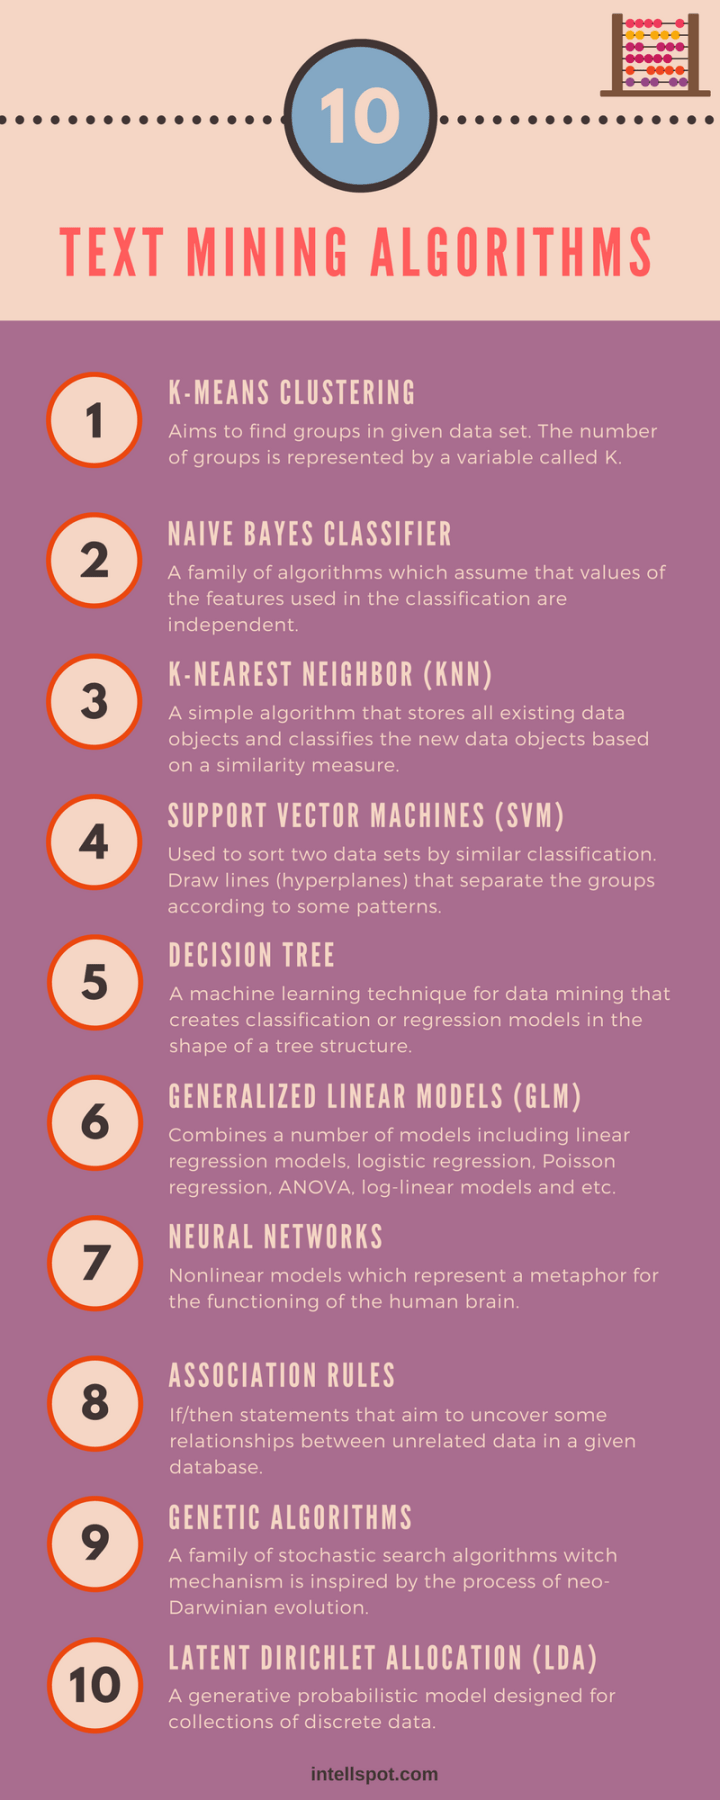 text mining algorithms list - infographic